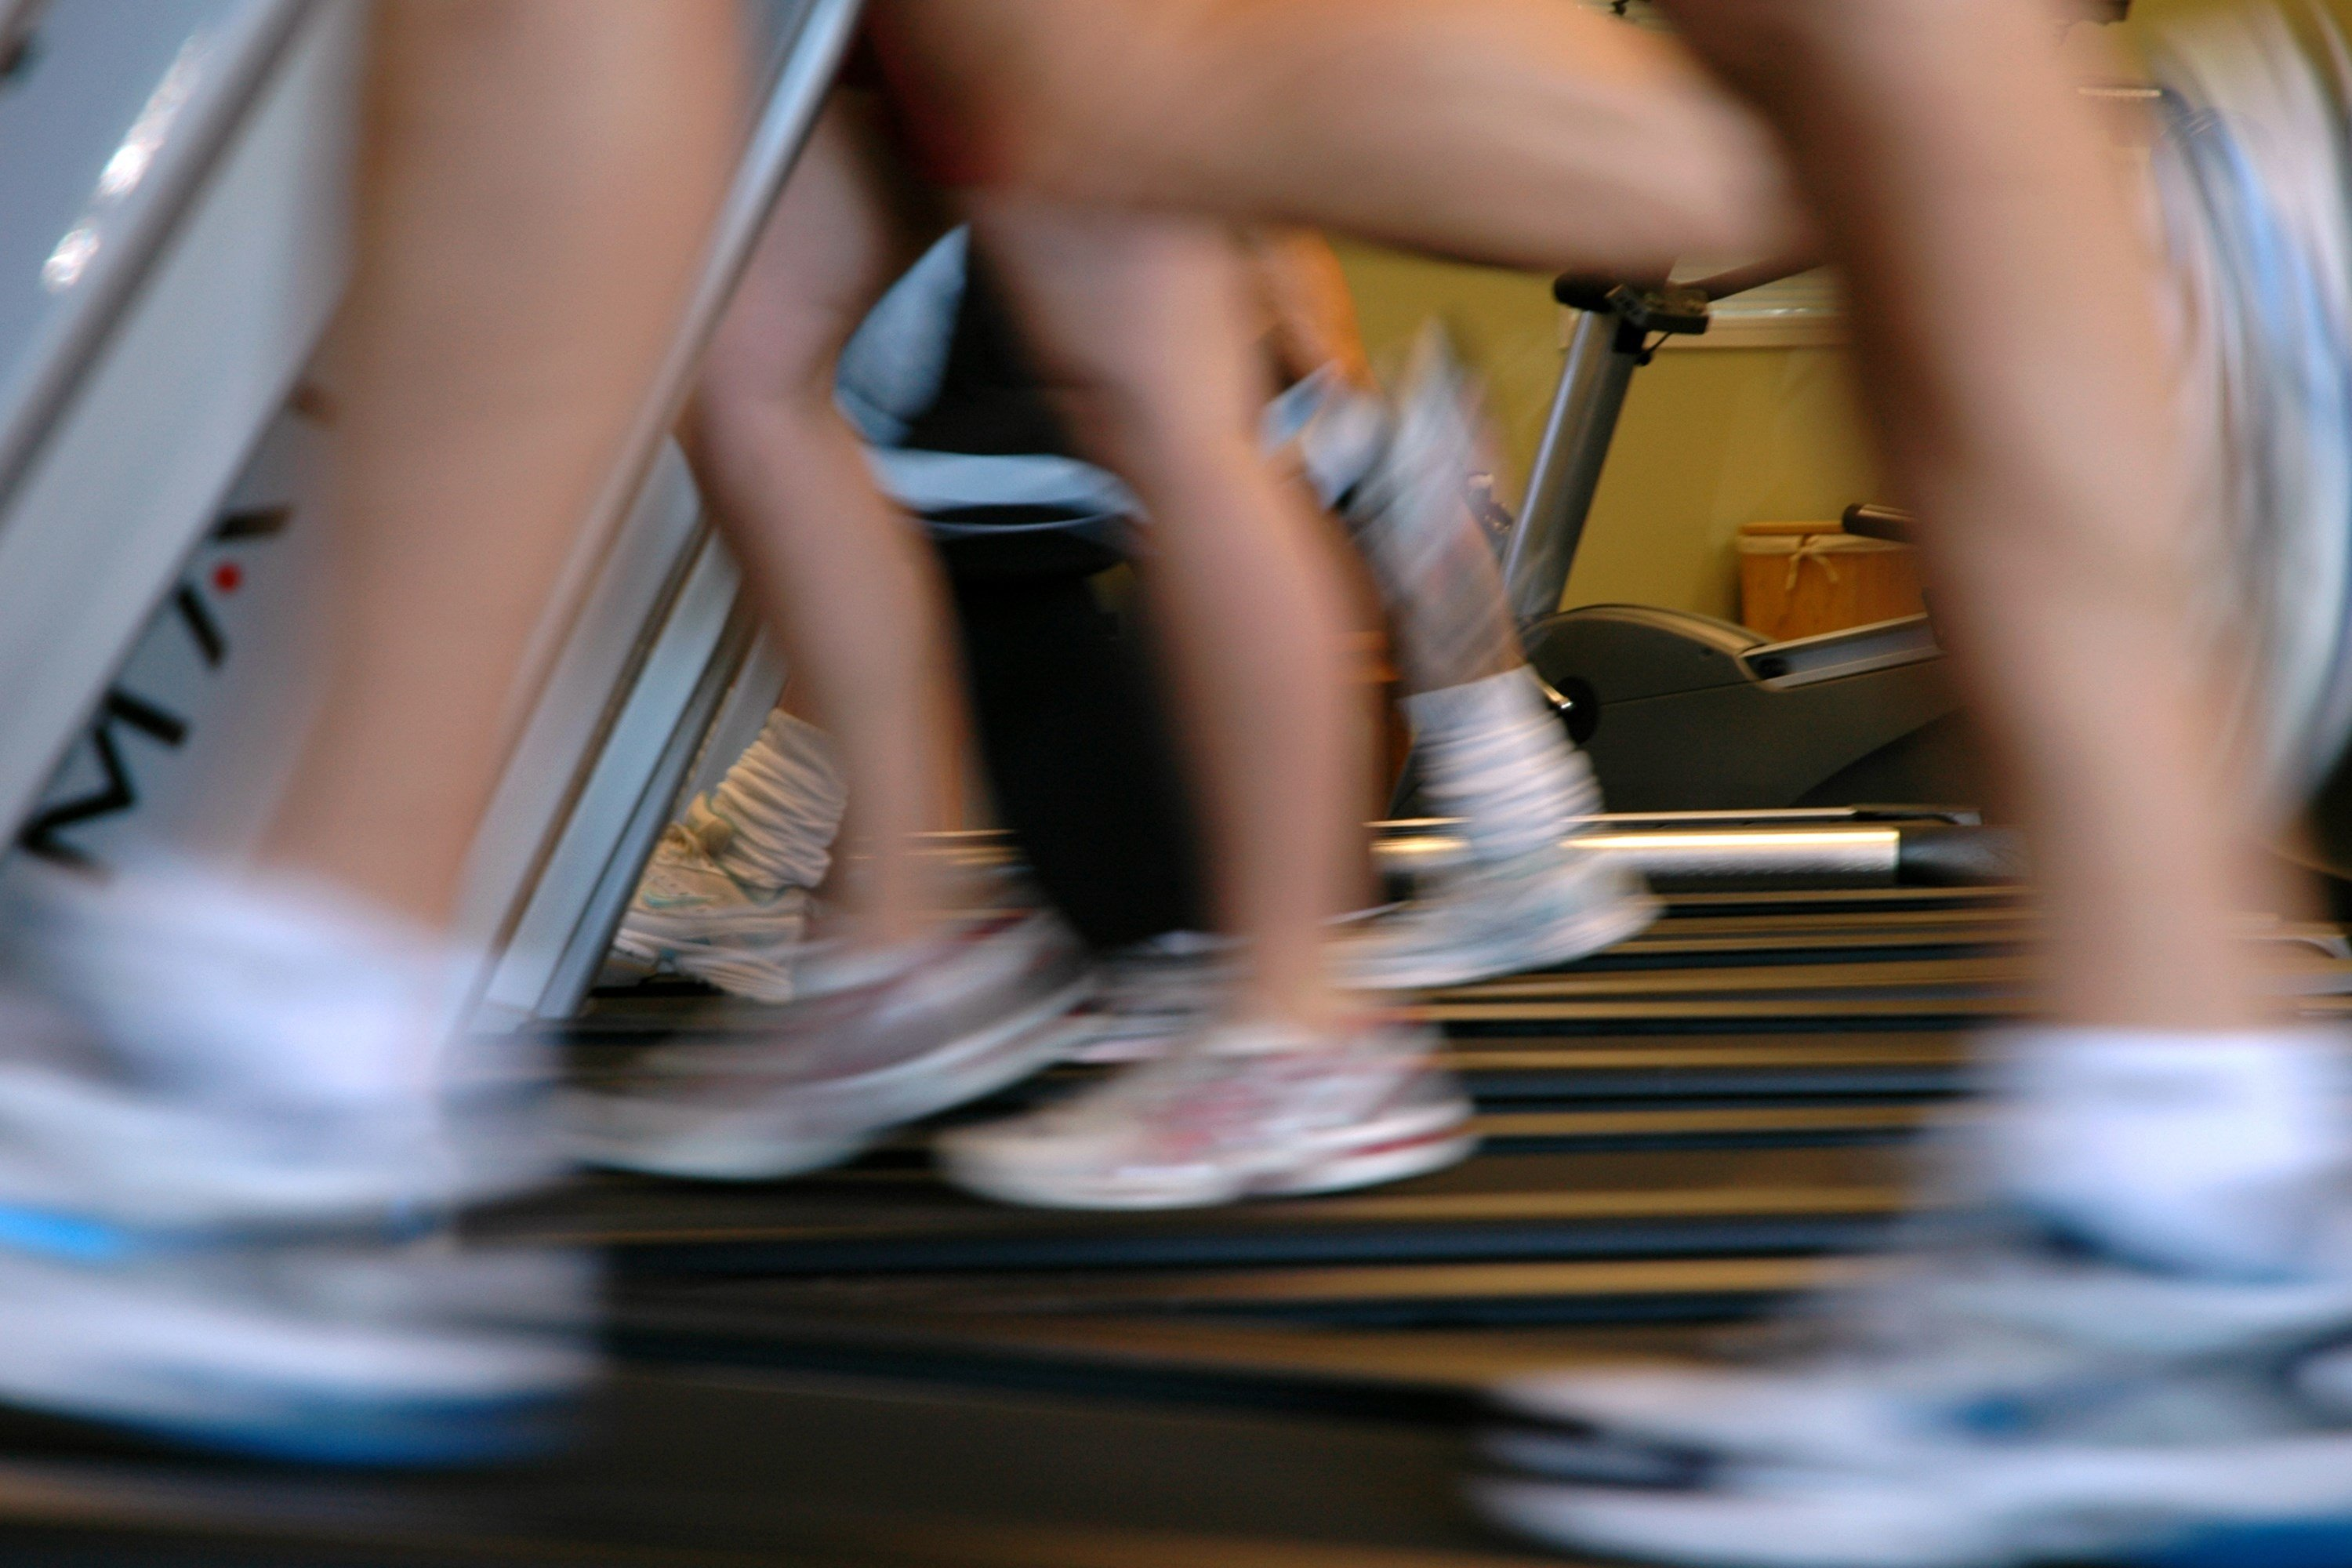 People running on treadmills (Source: Wikimedia Commons)